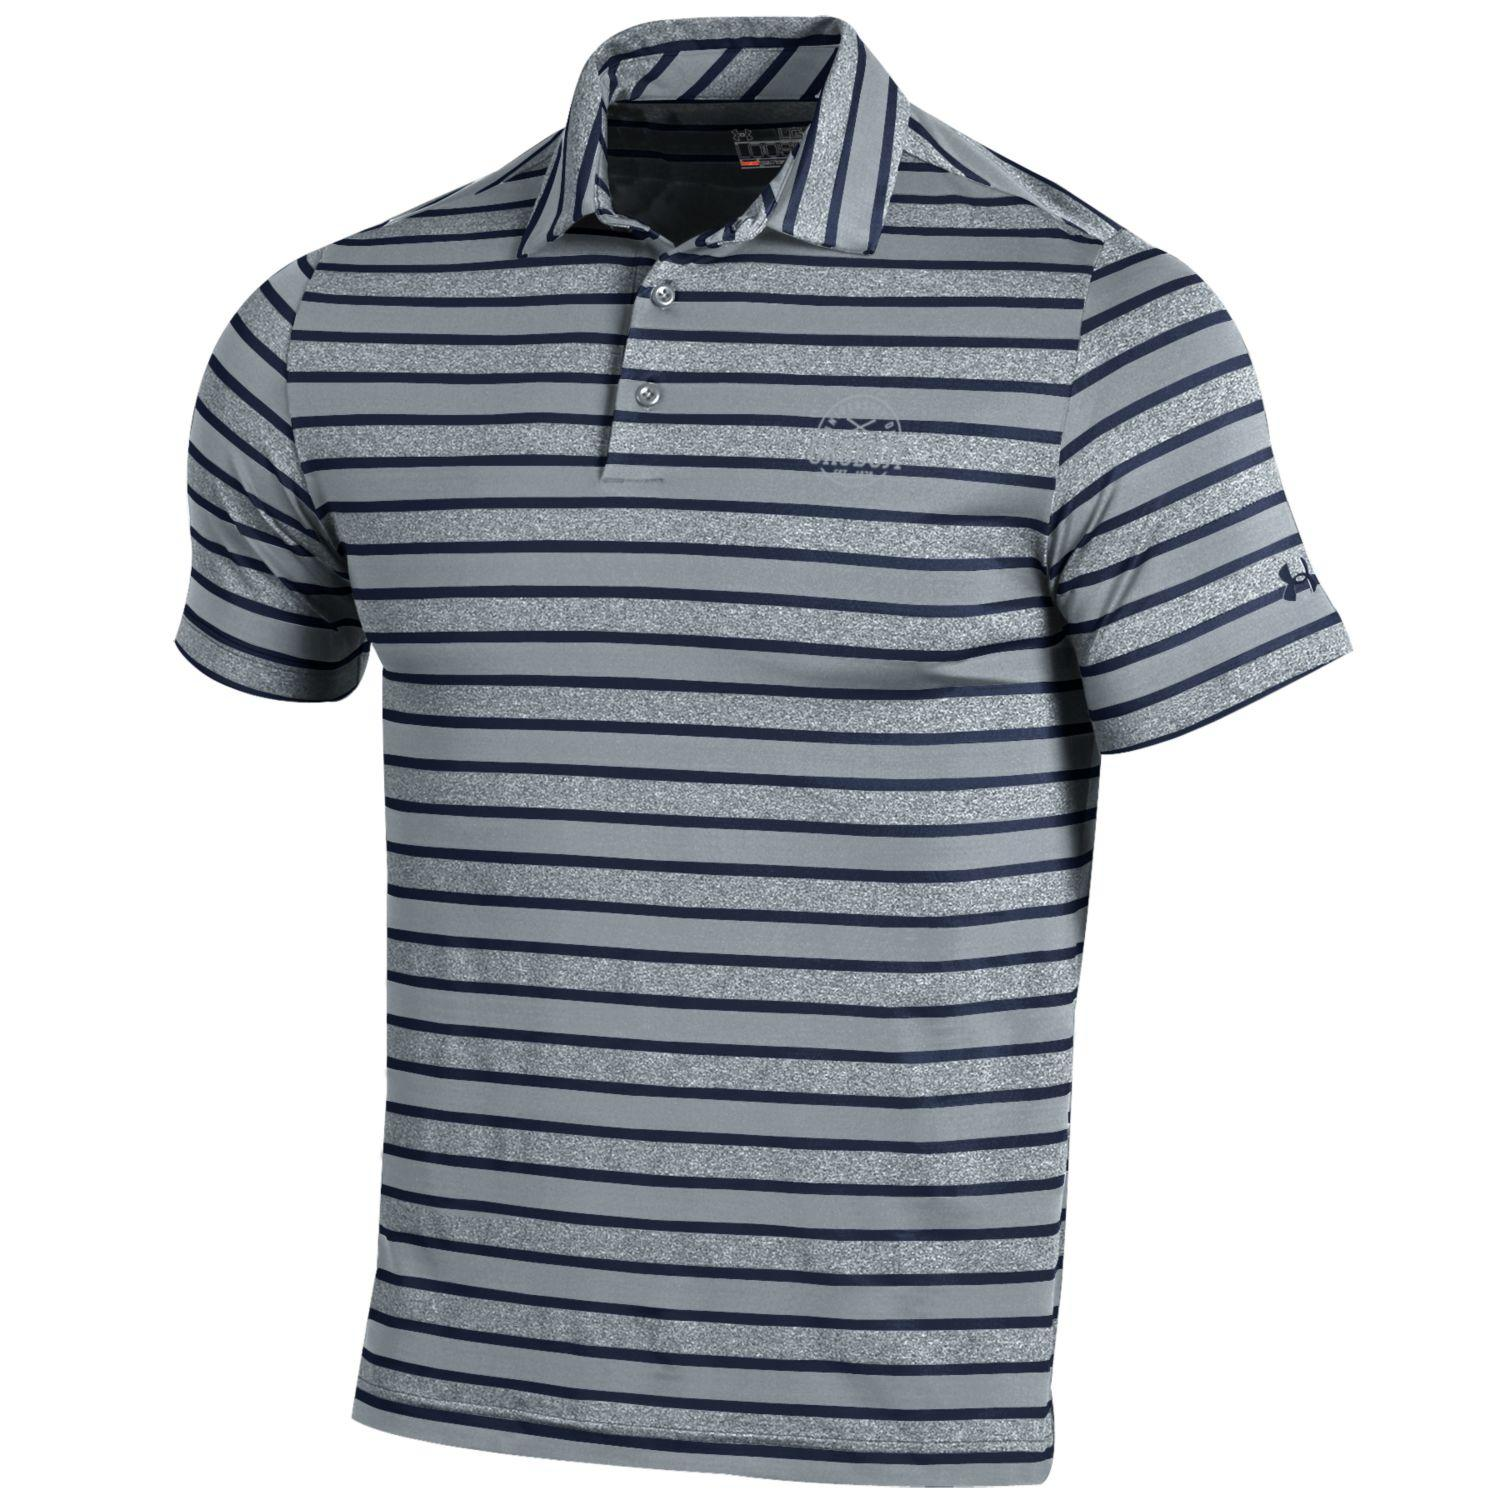 Men's Under Armour Golf Kinetic Stripe Polo - Midnight Navy